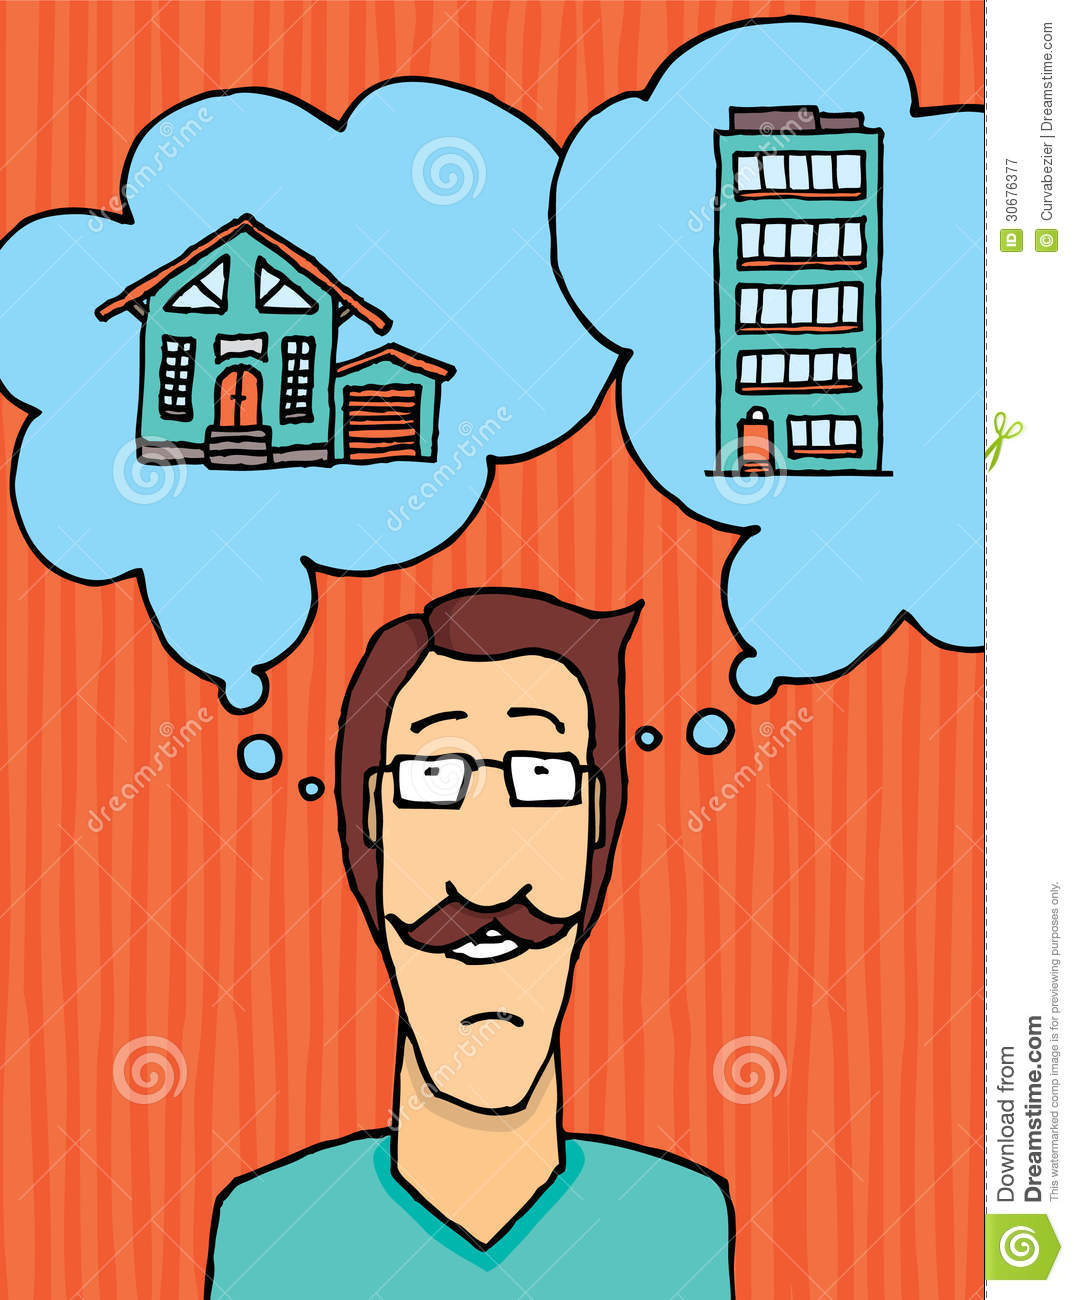 houses choosing where to live Rent spot blog - house and apartment rentals | landlord & property manager advice, renter news rent spot blog - news and advice for landlords and tenants renting apartments and houses choosing where to live in winnipeg.